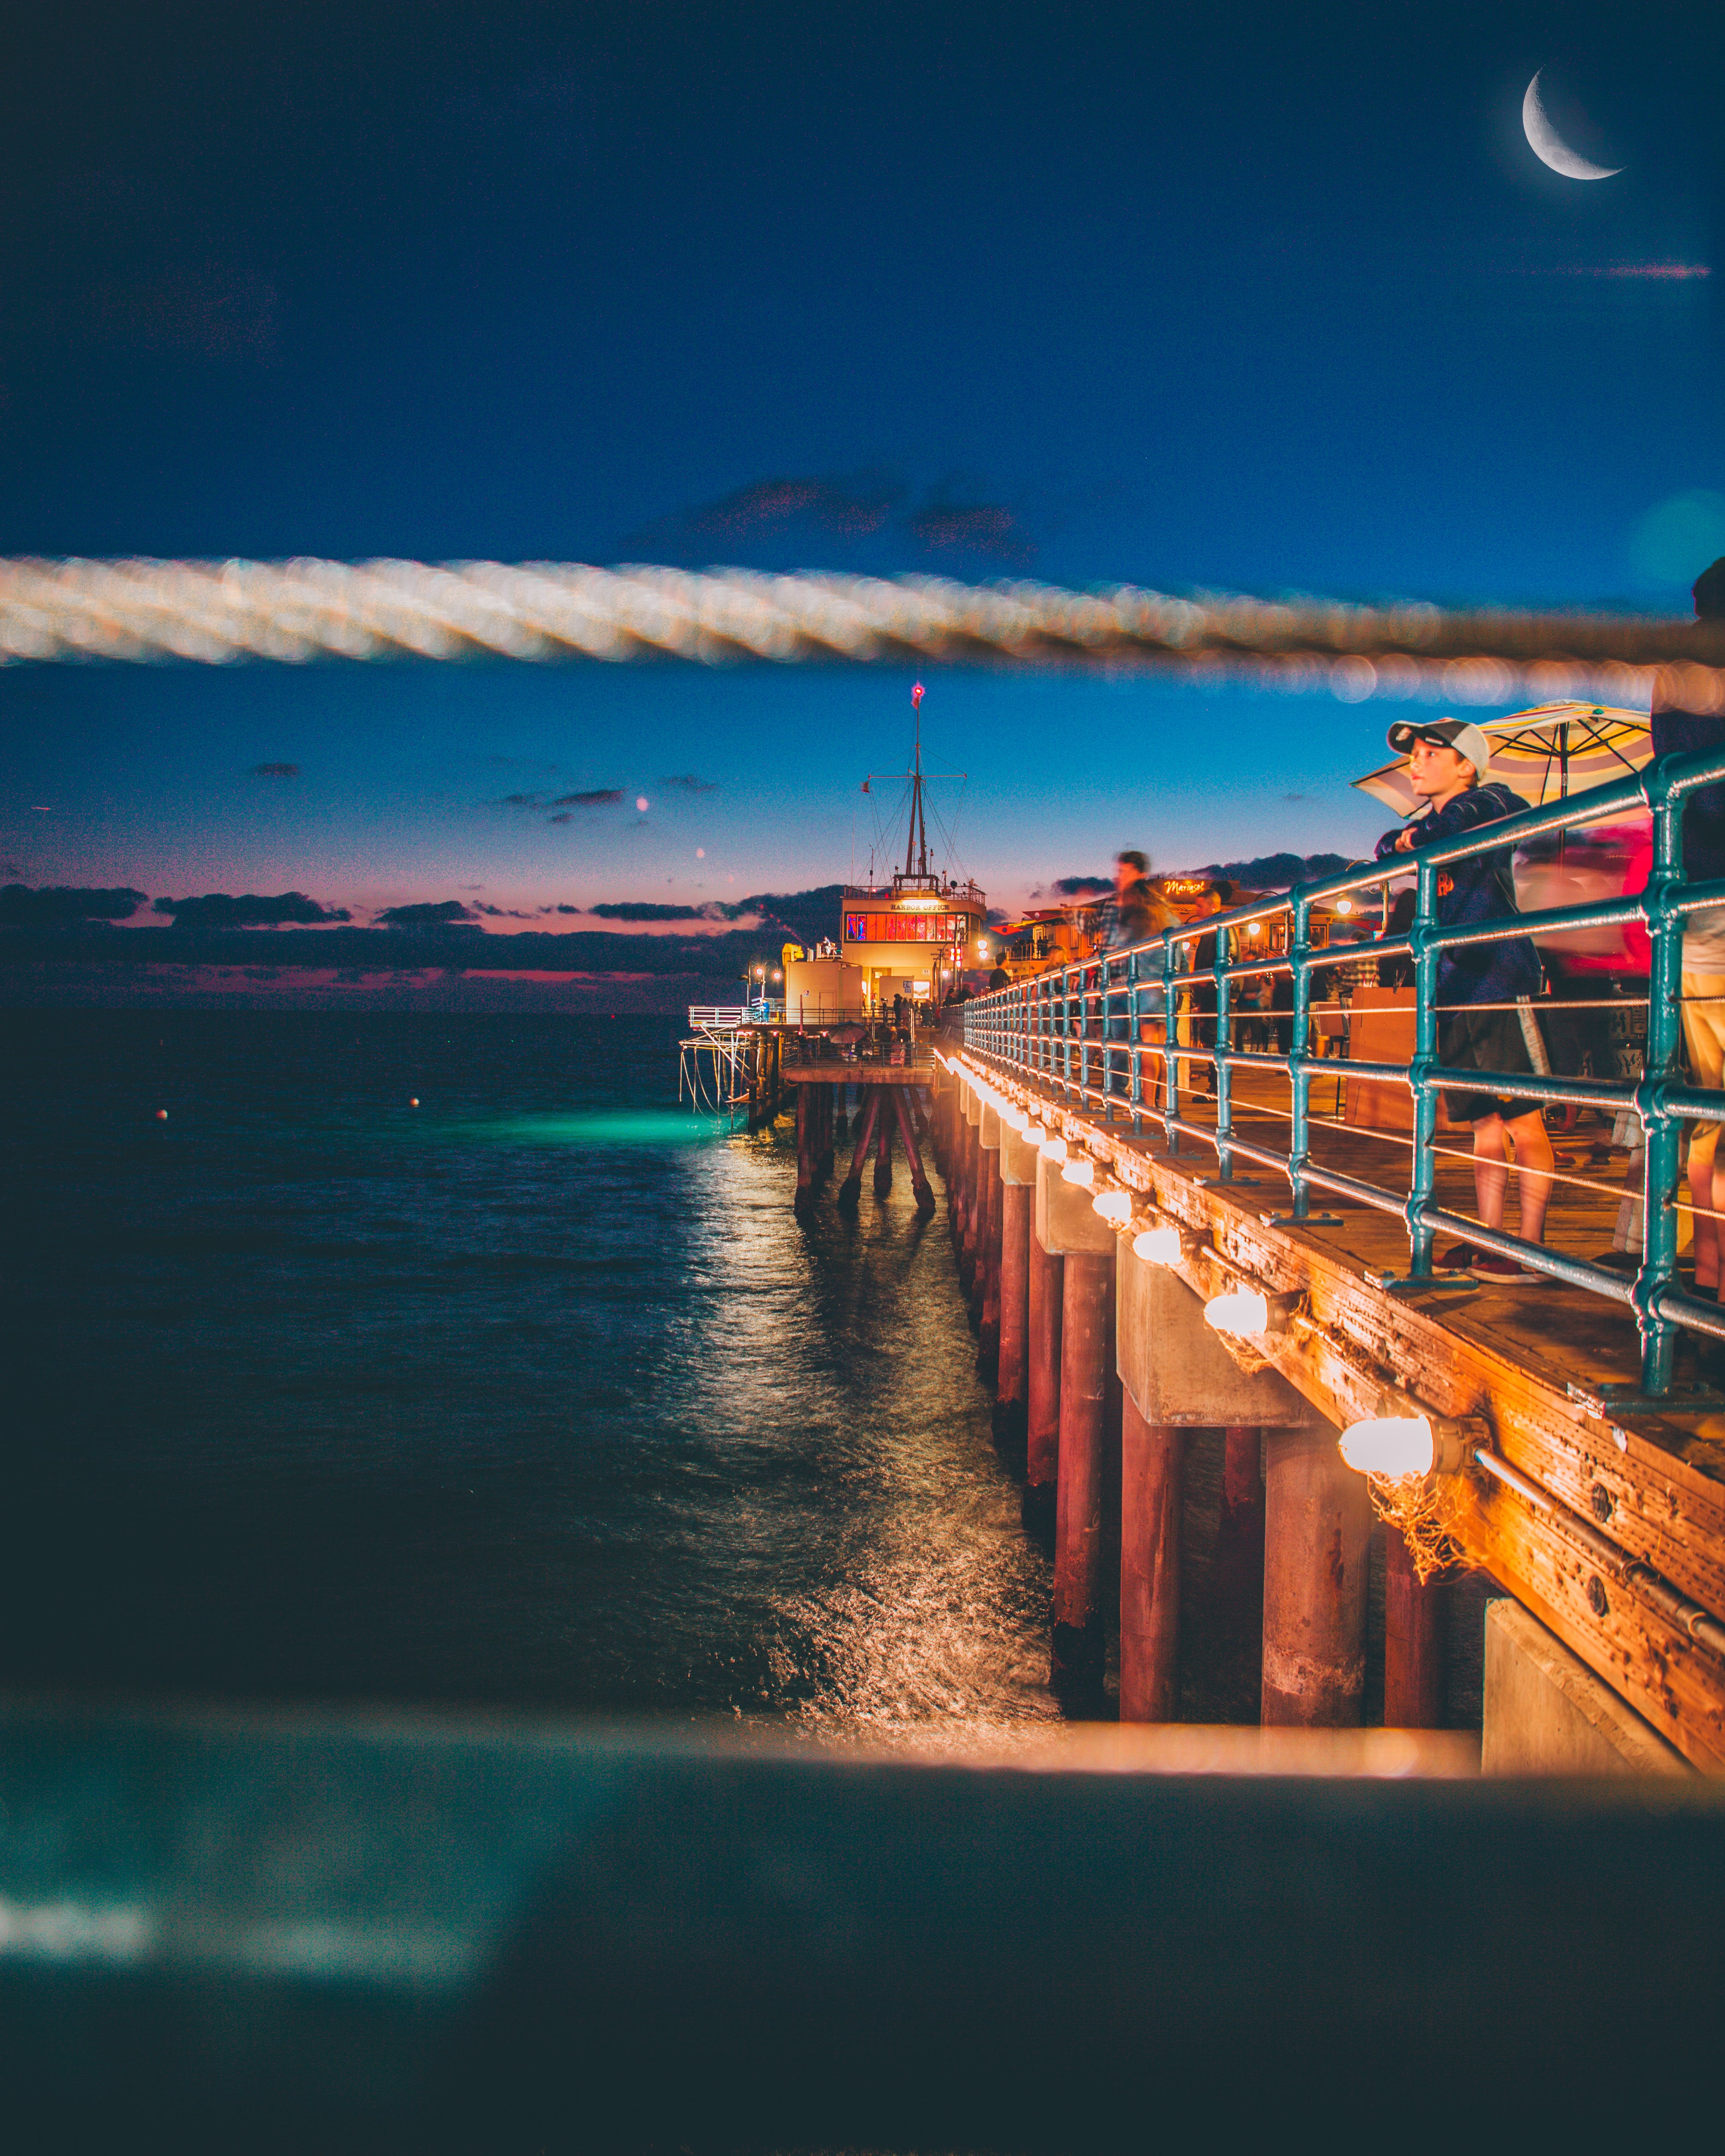 Free stock photo of crescent moon, lines, pier, Santa Monica